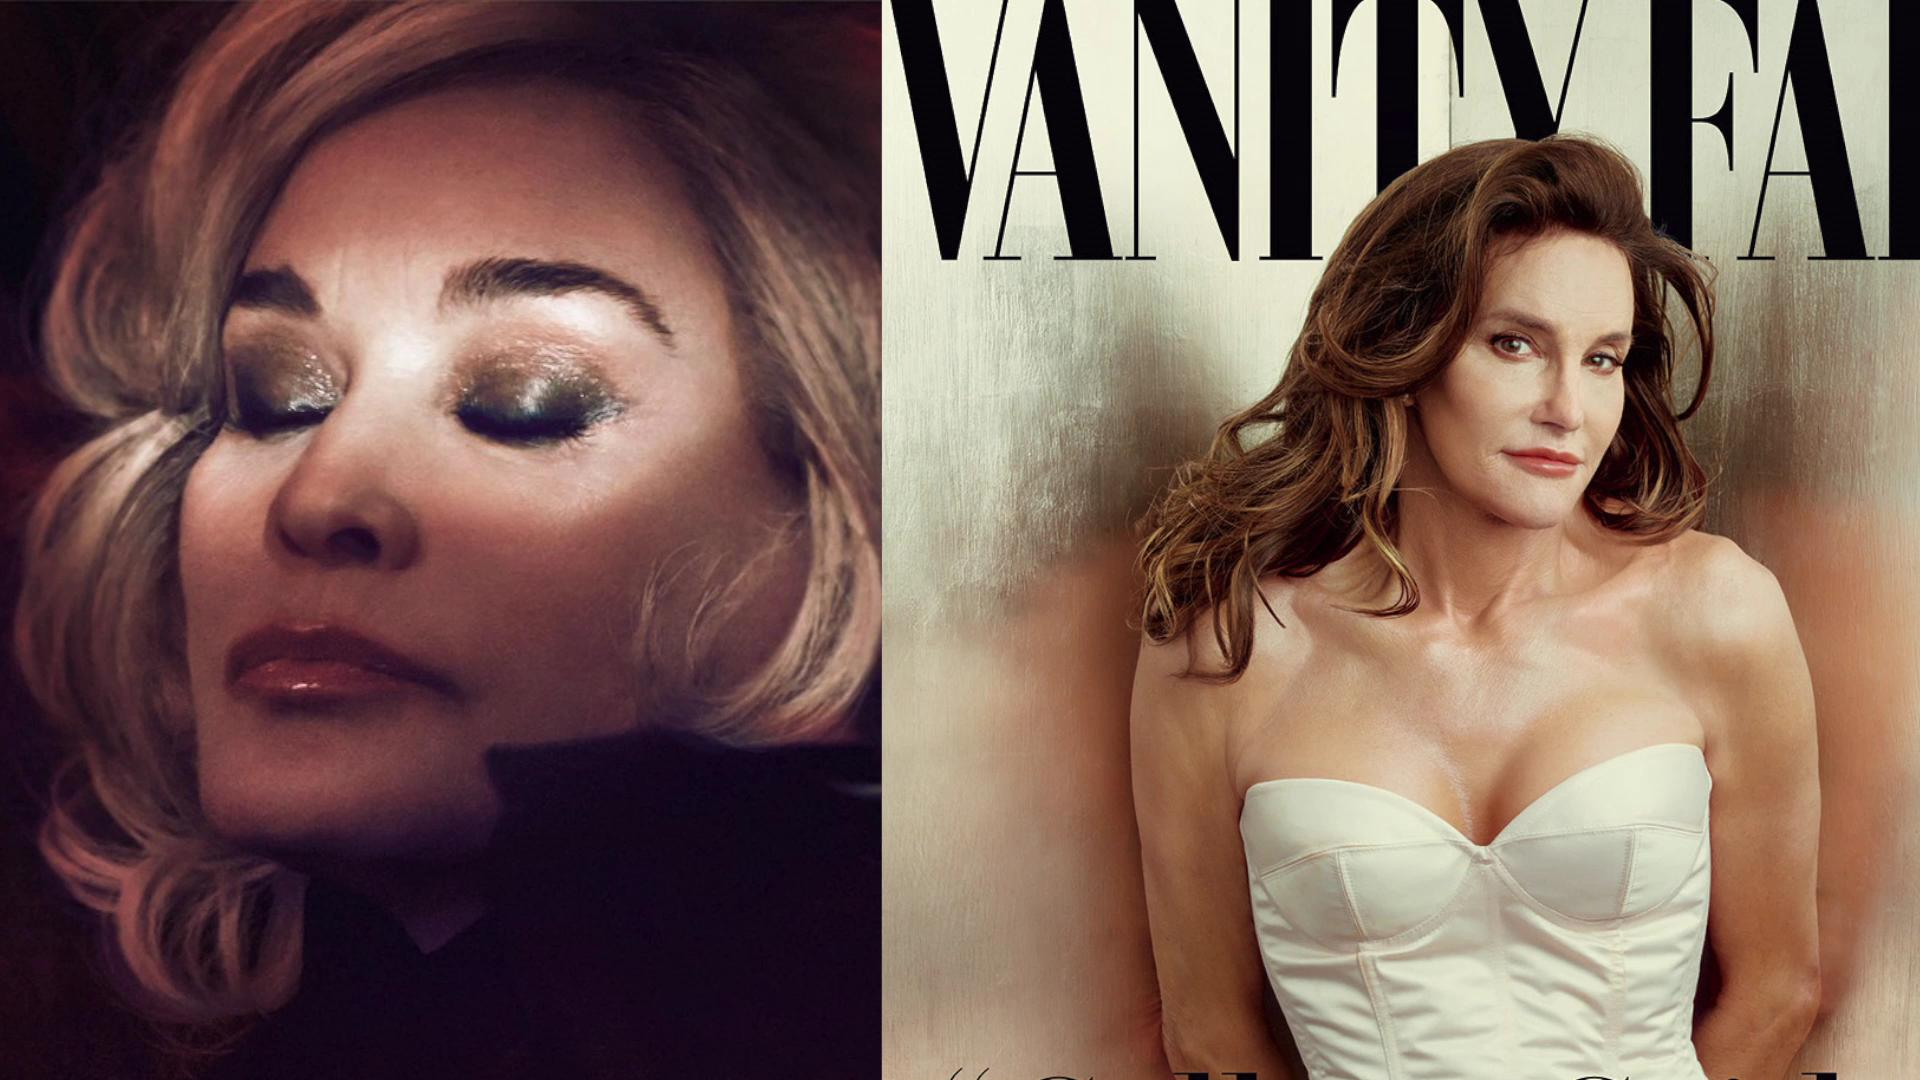 Jessica Lange calls Caitlyn Jenner comparisons 'wonderful'